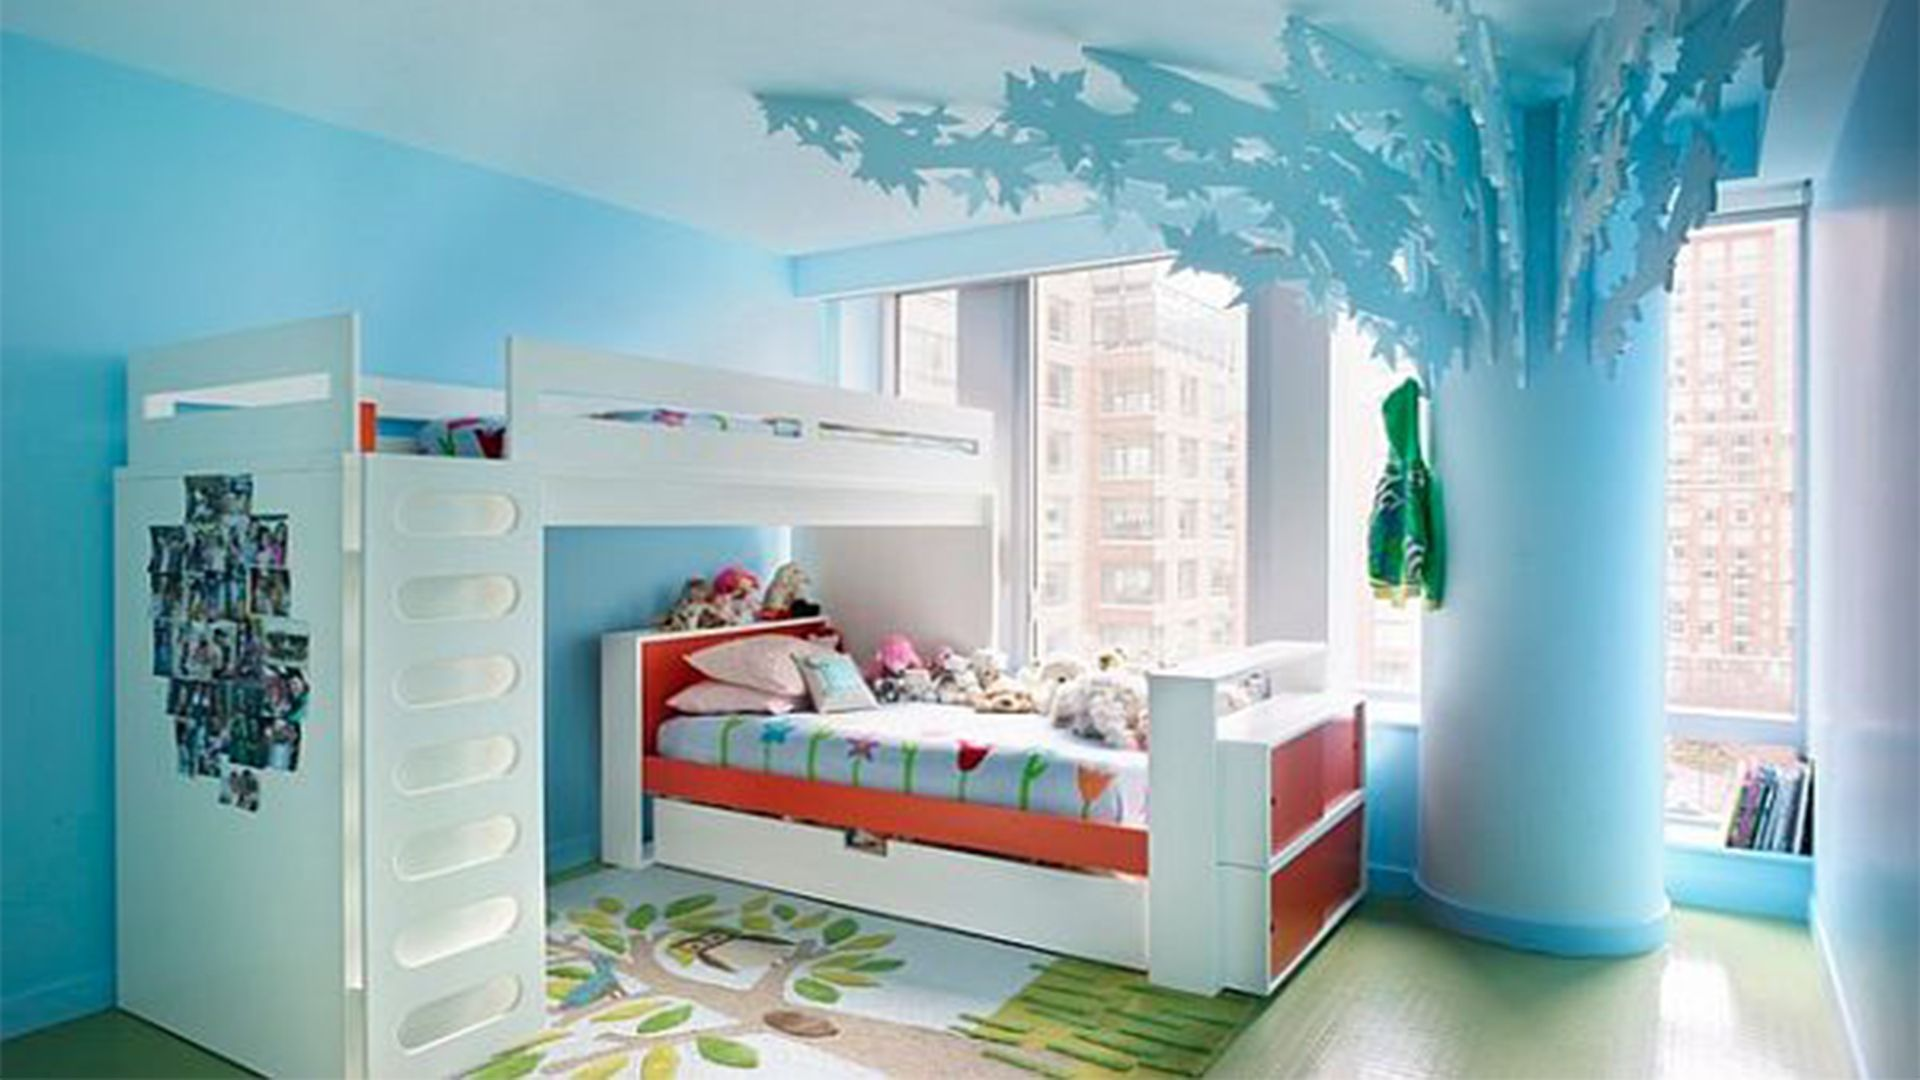 the tween trellischicago guest furniture to bedroom fabulous make ideas